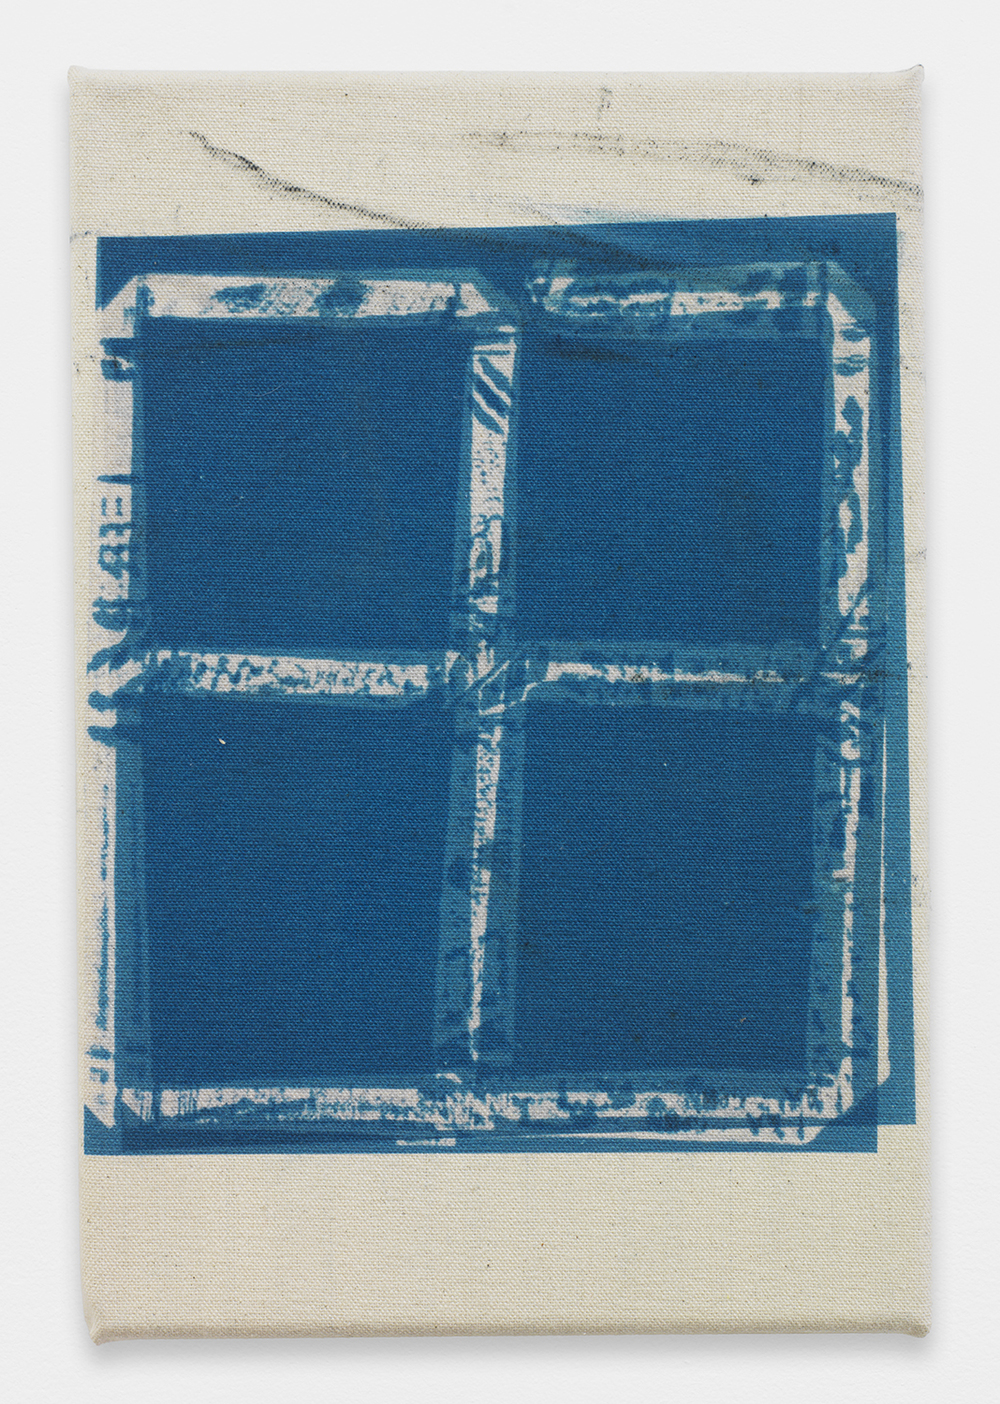 AUGUSTUS THOMPSON Untitled, 2013 Inkjet on raw canvas 12 x 8 inches